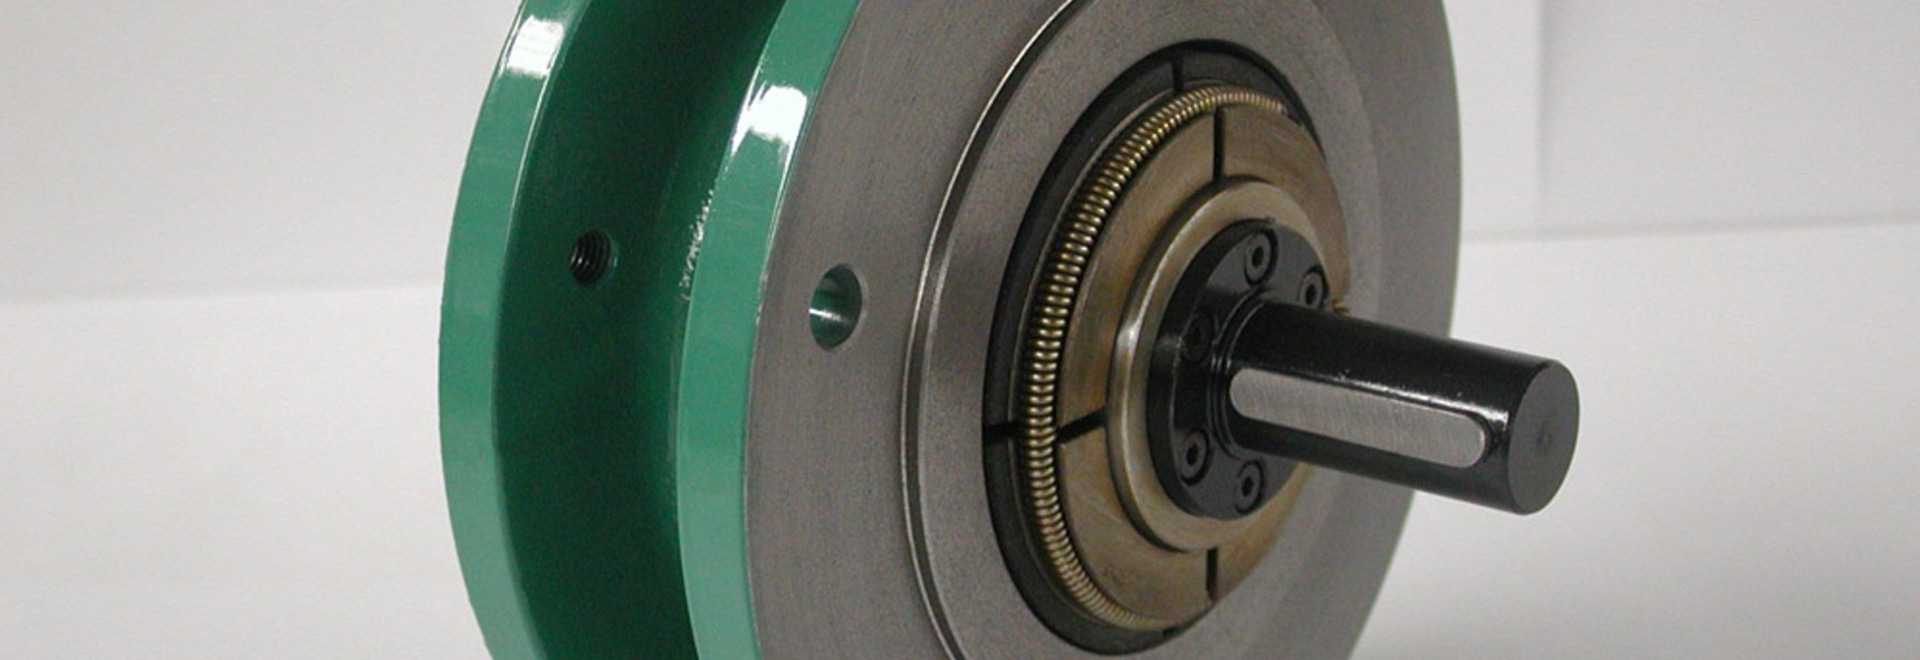 EC centrigugal overspeed safety brake; with or without drums